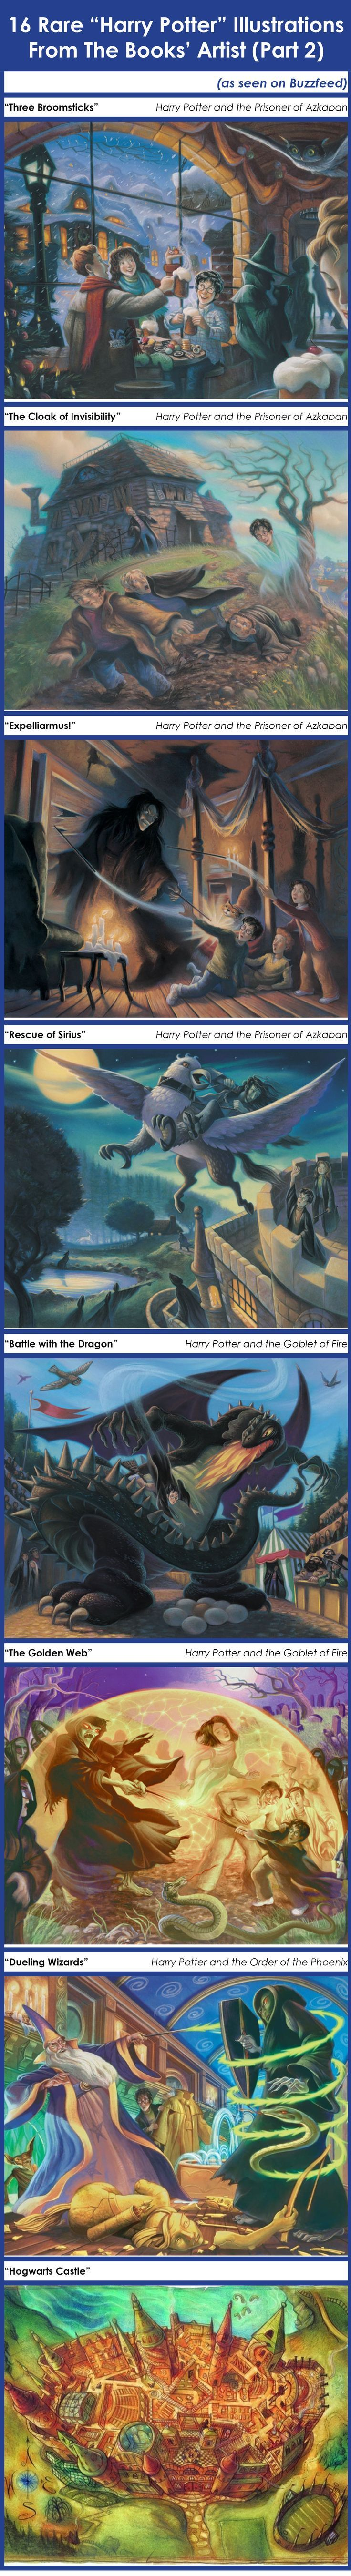 16 Rare 鈥淗arry Potter鈥?Illustrations From The Books鈥?Artist Mary GrandPre (PART 2)